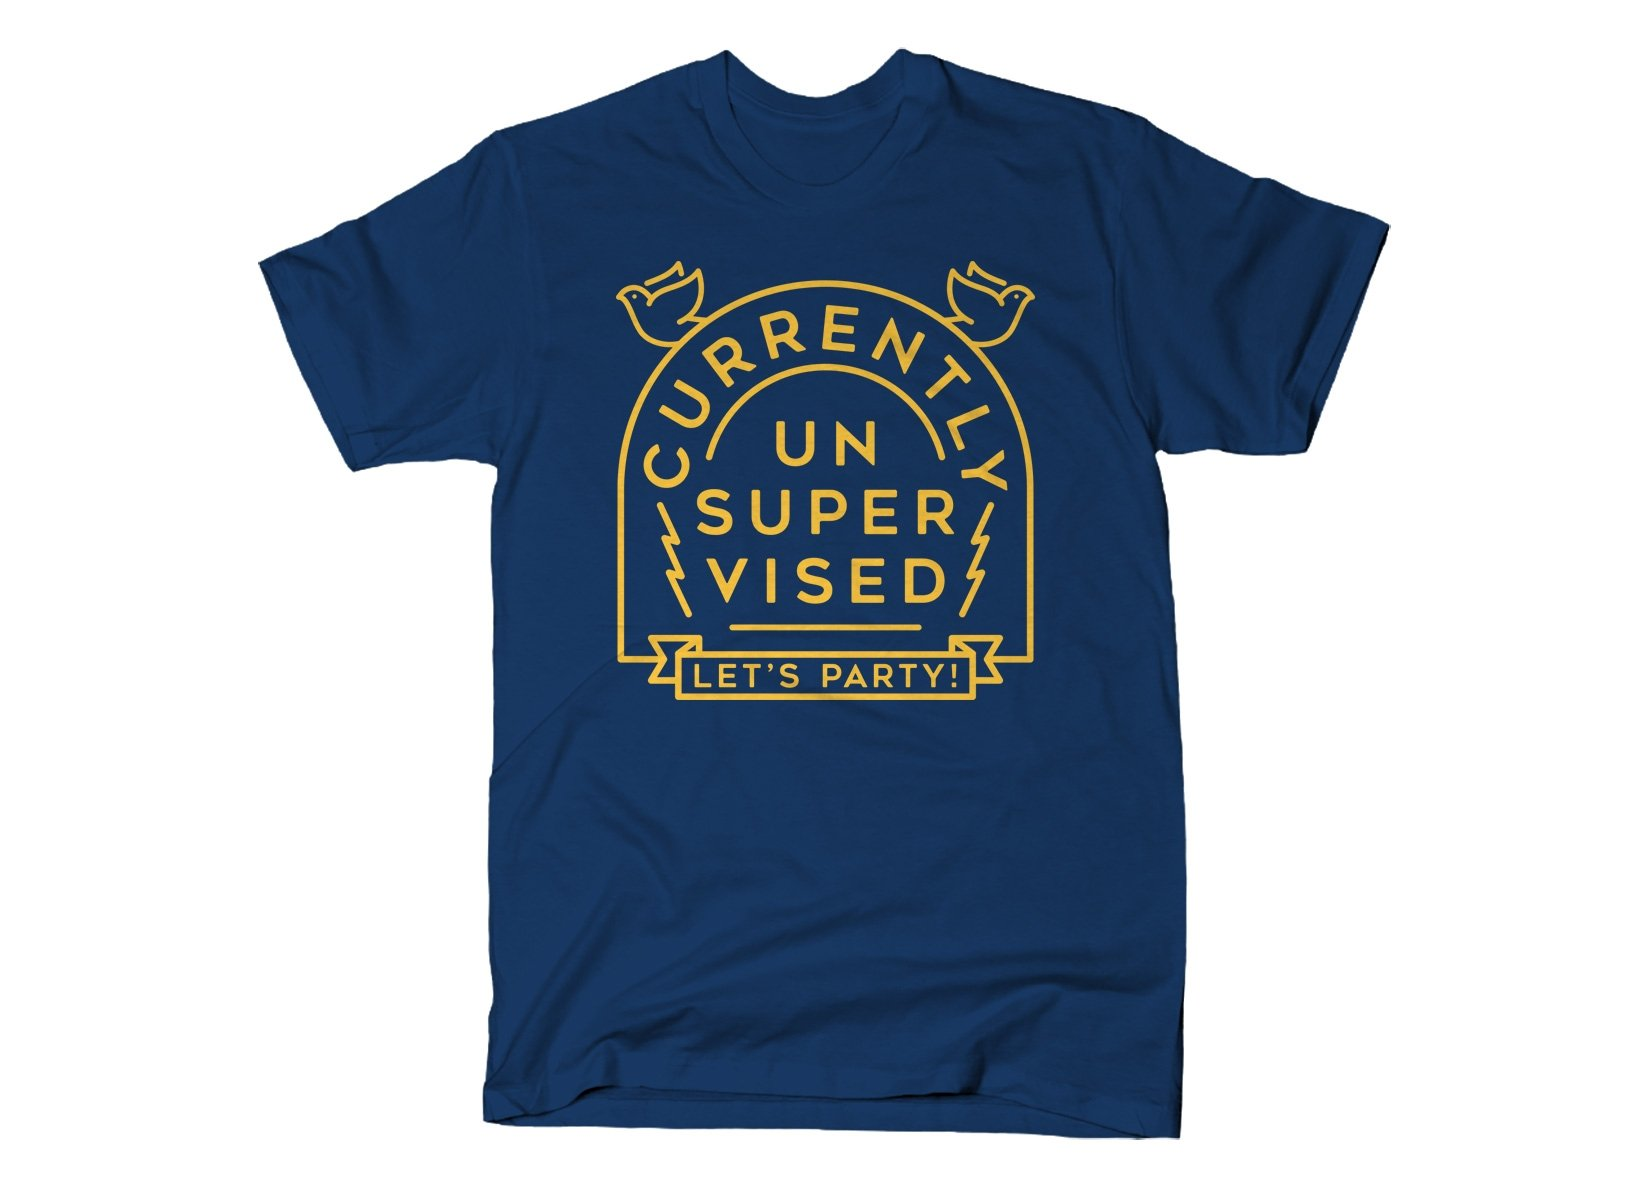 Currently Unsupervised on Mens T-Shirt